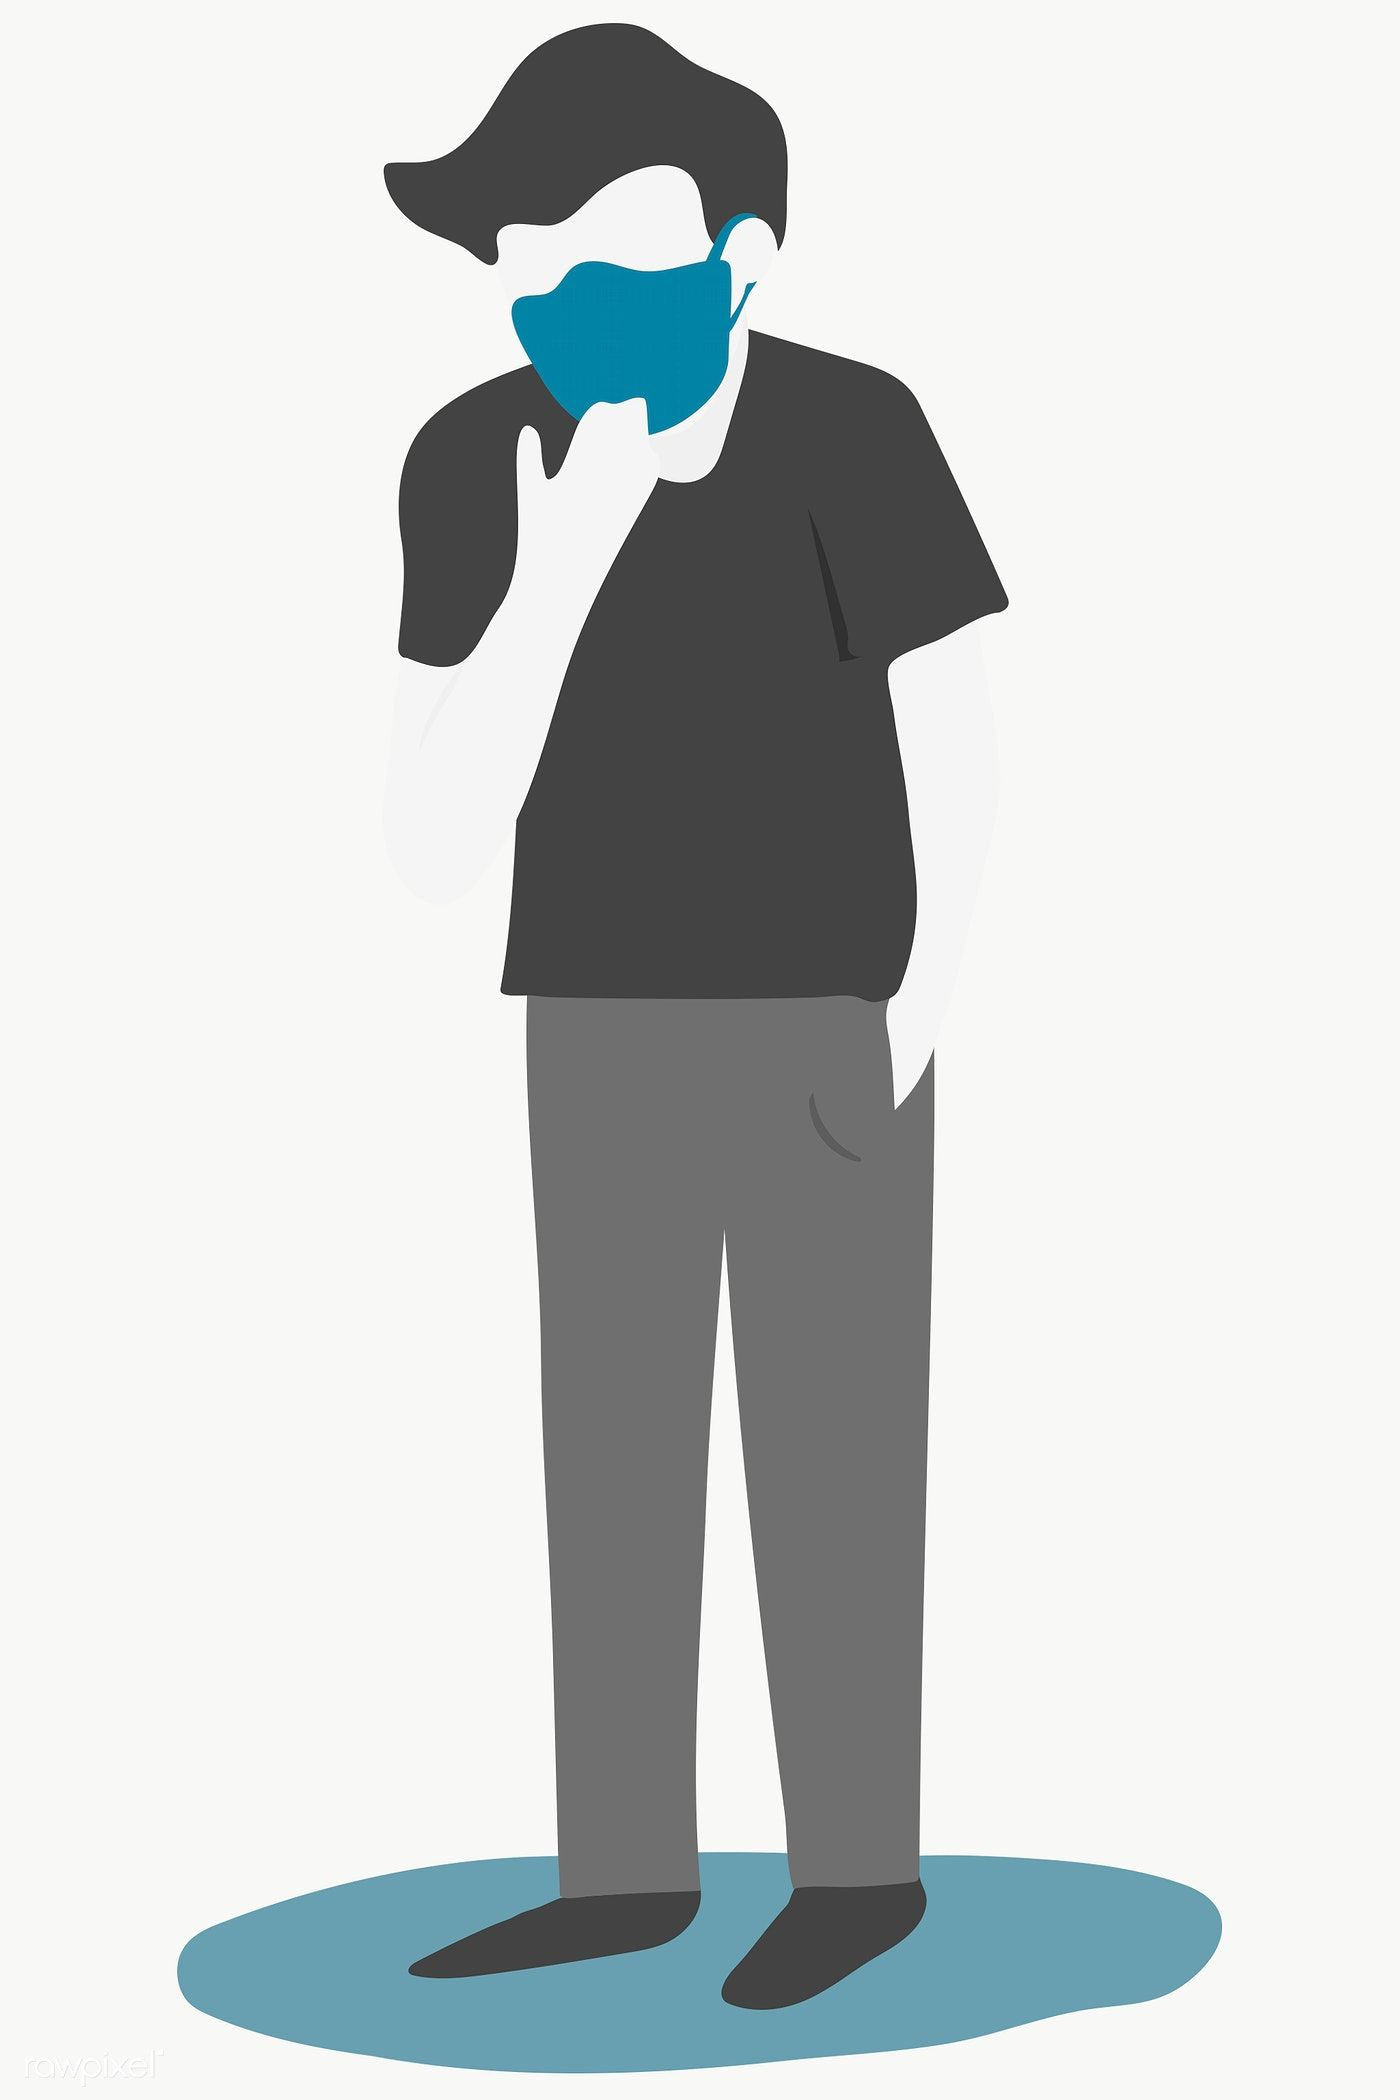 Sick Man Wearing A Protective Face Mask Transparent Png Free Image By Rawpixel Com Techi